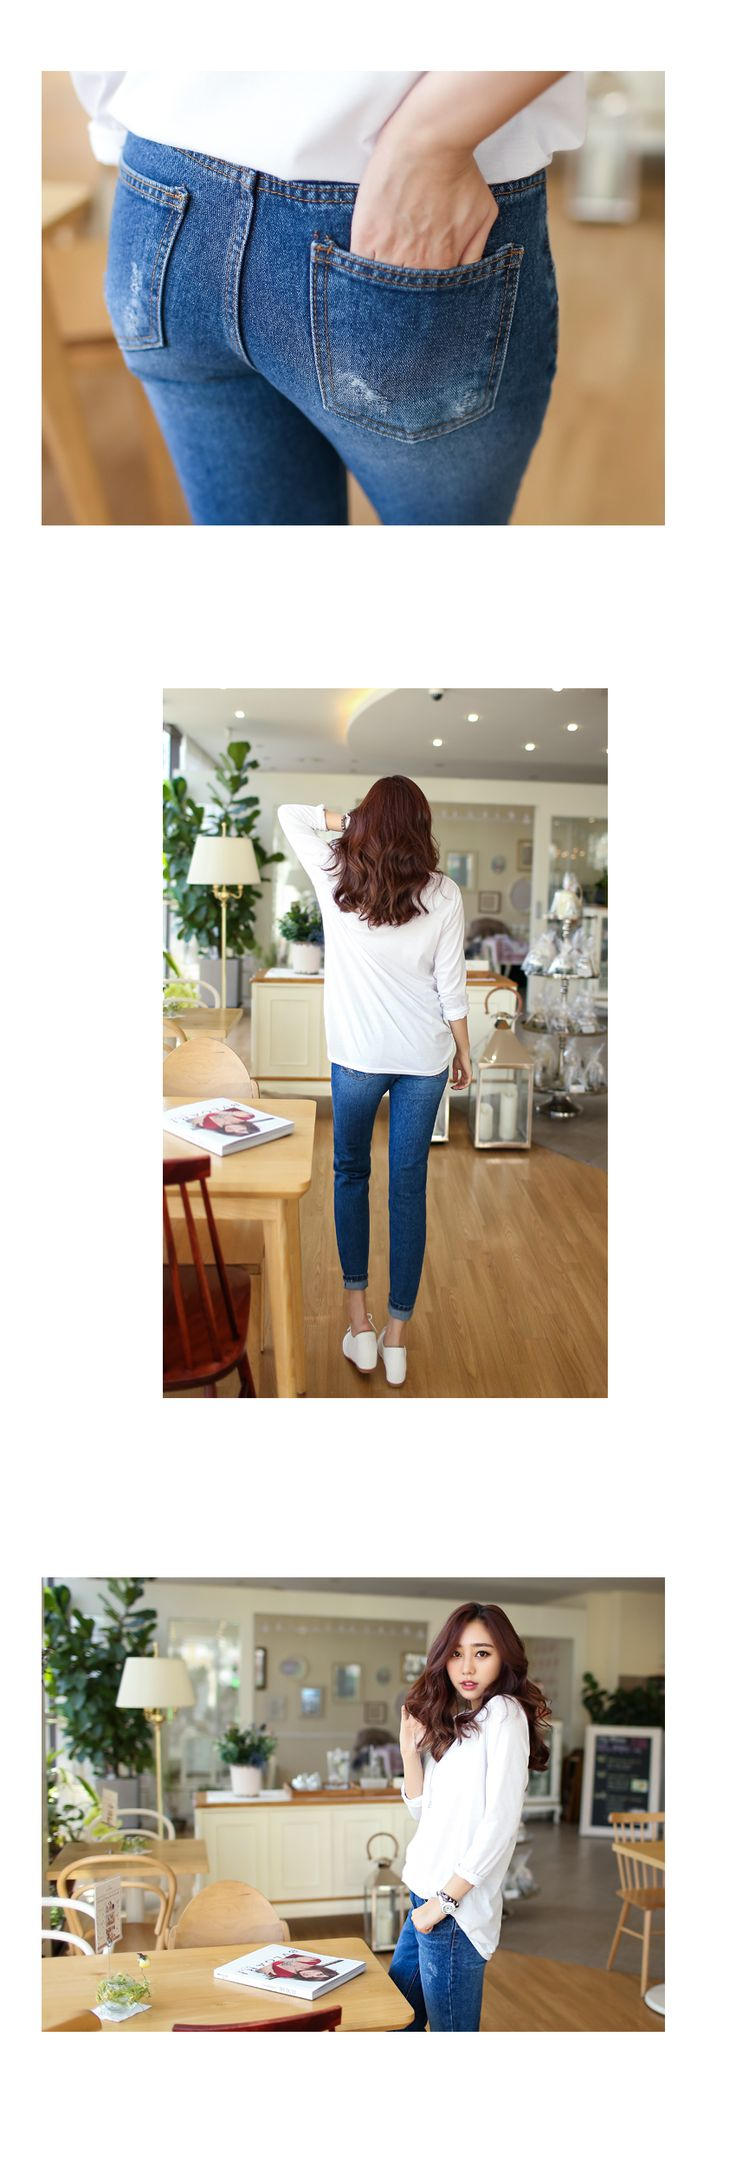 Korea Woman Big size clothing shop. [Jstyle] Wool pants / Size : 26-38 / Price : 32.83 USD #dailylook #OOTD #JSTYLE #plussize #pants #bottom #jeans #loosefit #large #xlarge